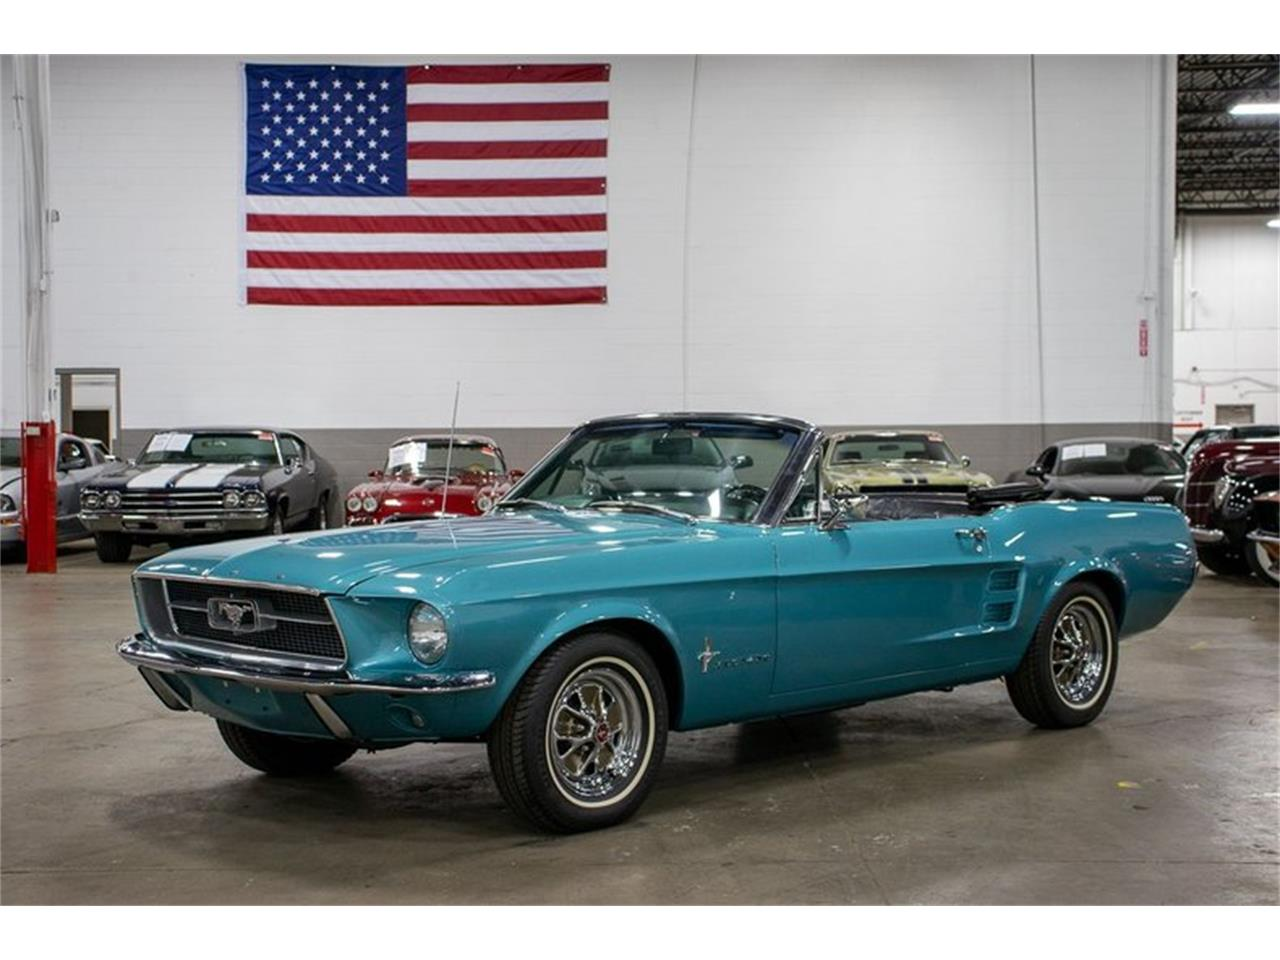 Ford Mustang Ford mustang code c cabriolet prix tout compris 1967